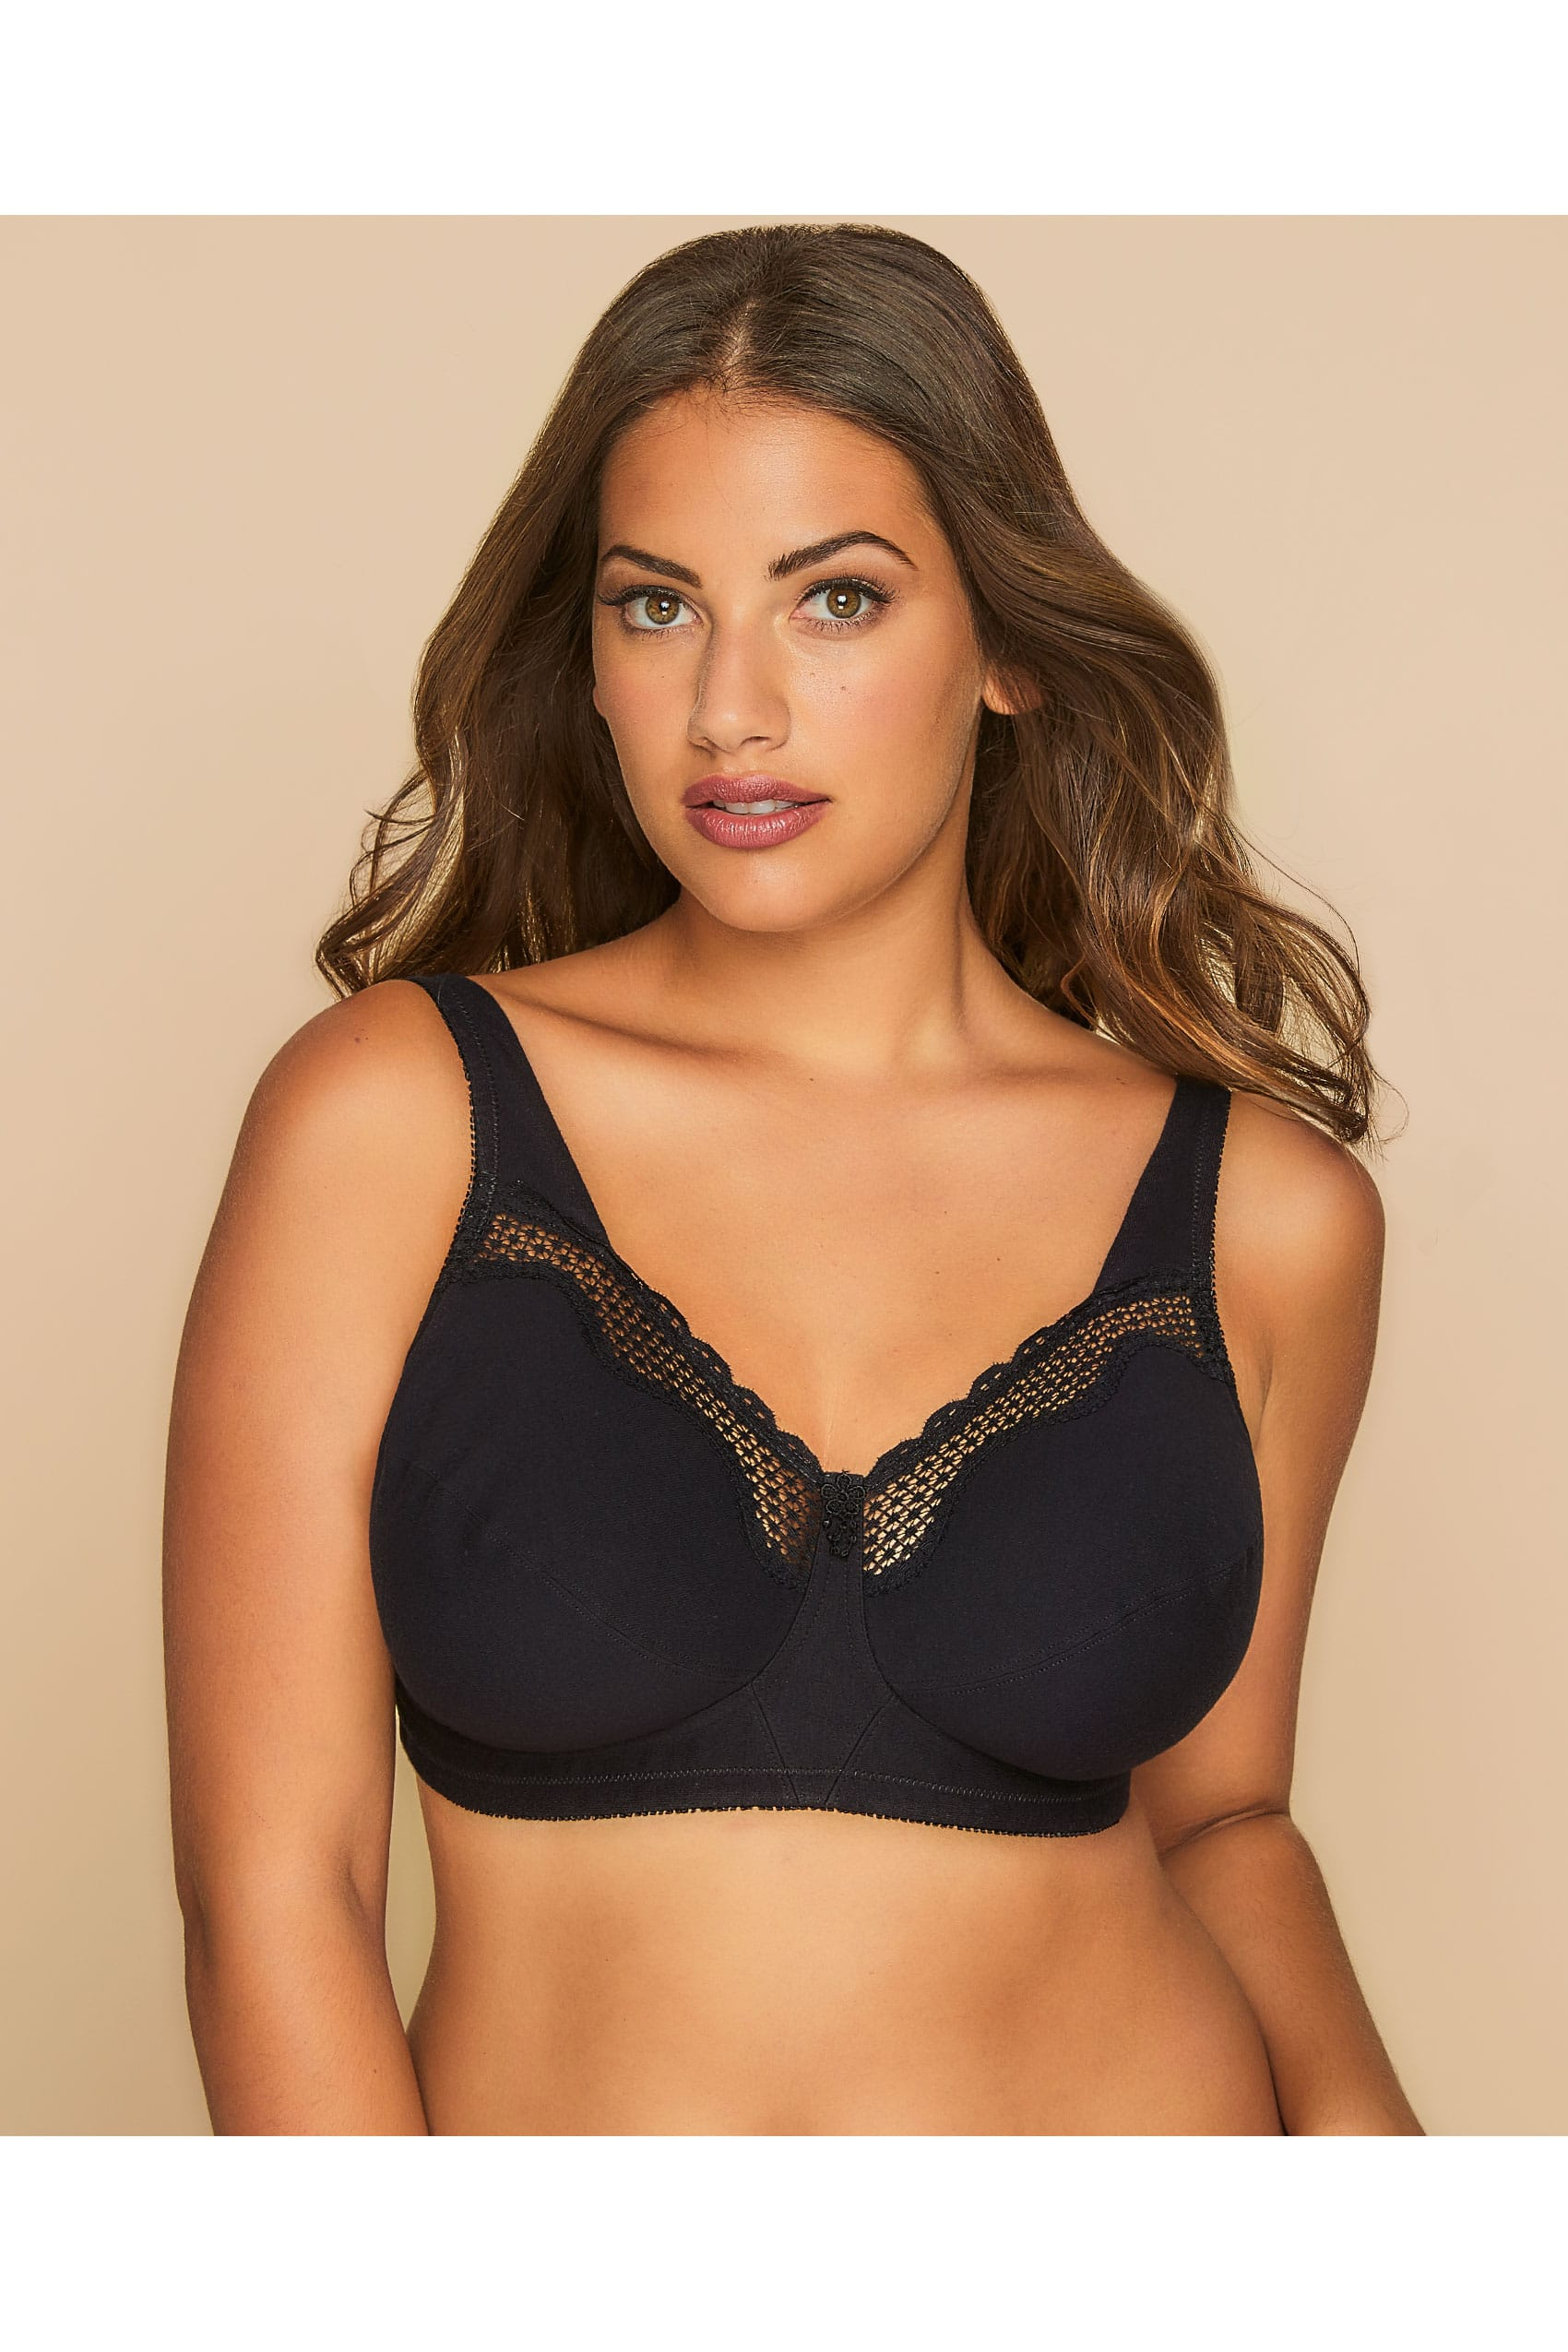 3e0be2d47b1 BESTFORM Black Cotton Comfort Non-Wired Bra